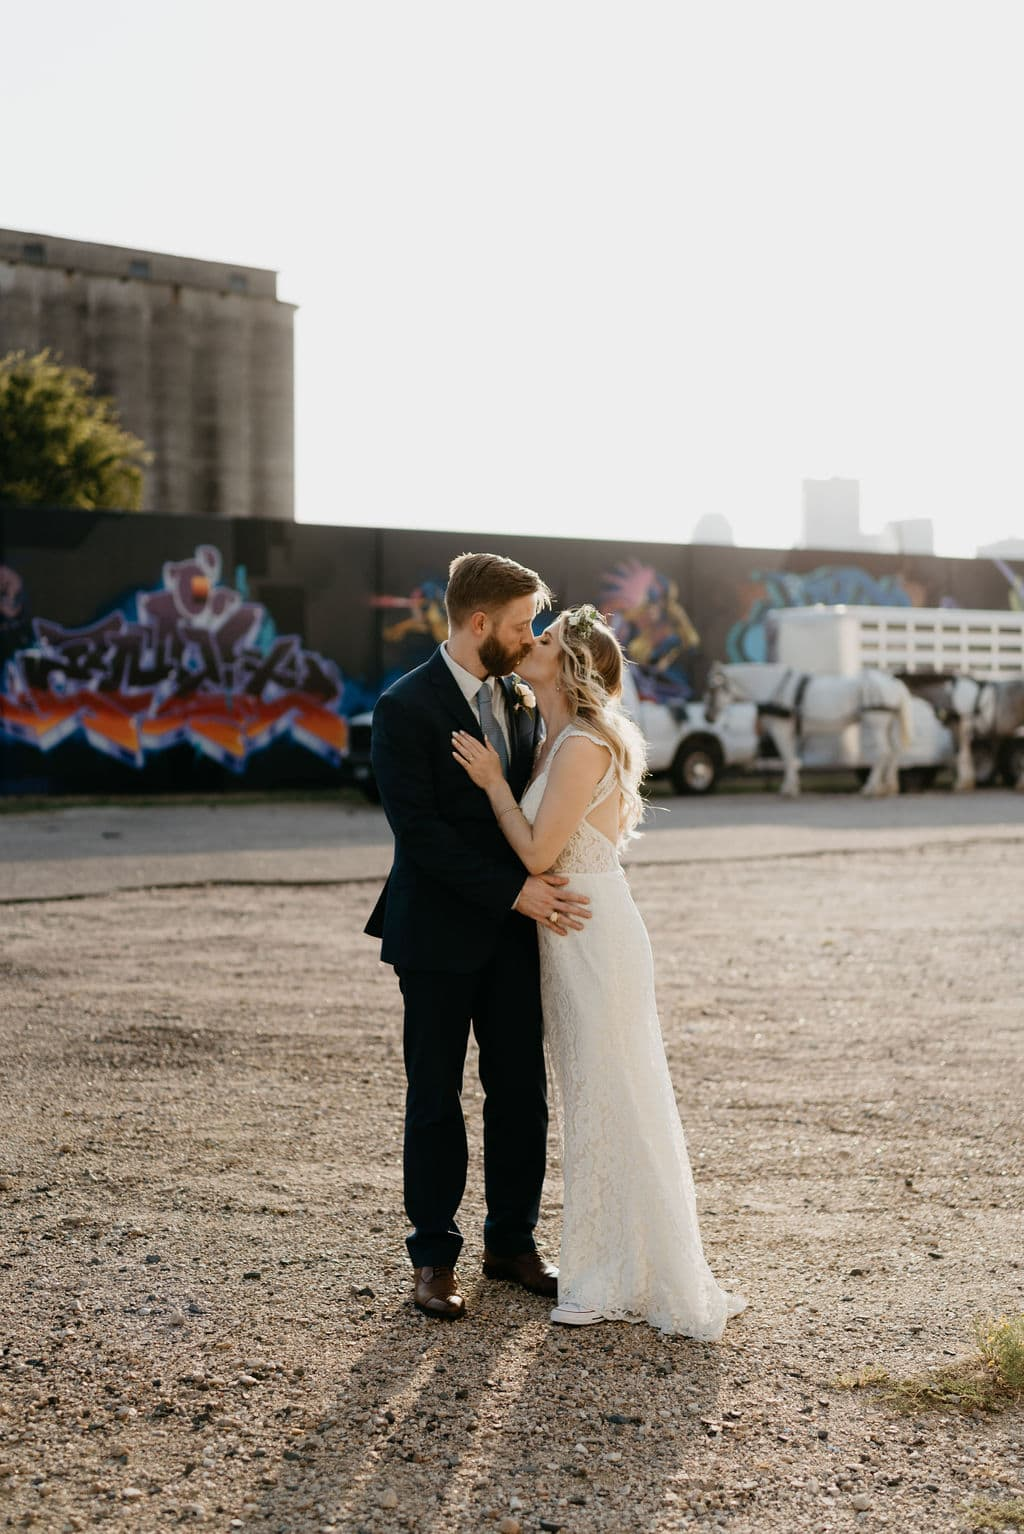 Bride and groom portraits from their Hickory Street Annex Wedding reception